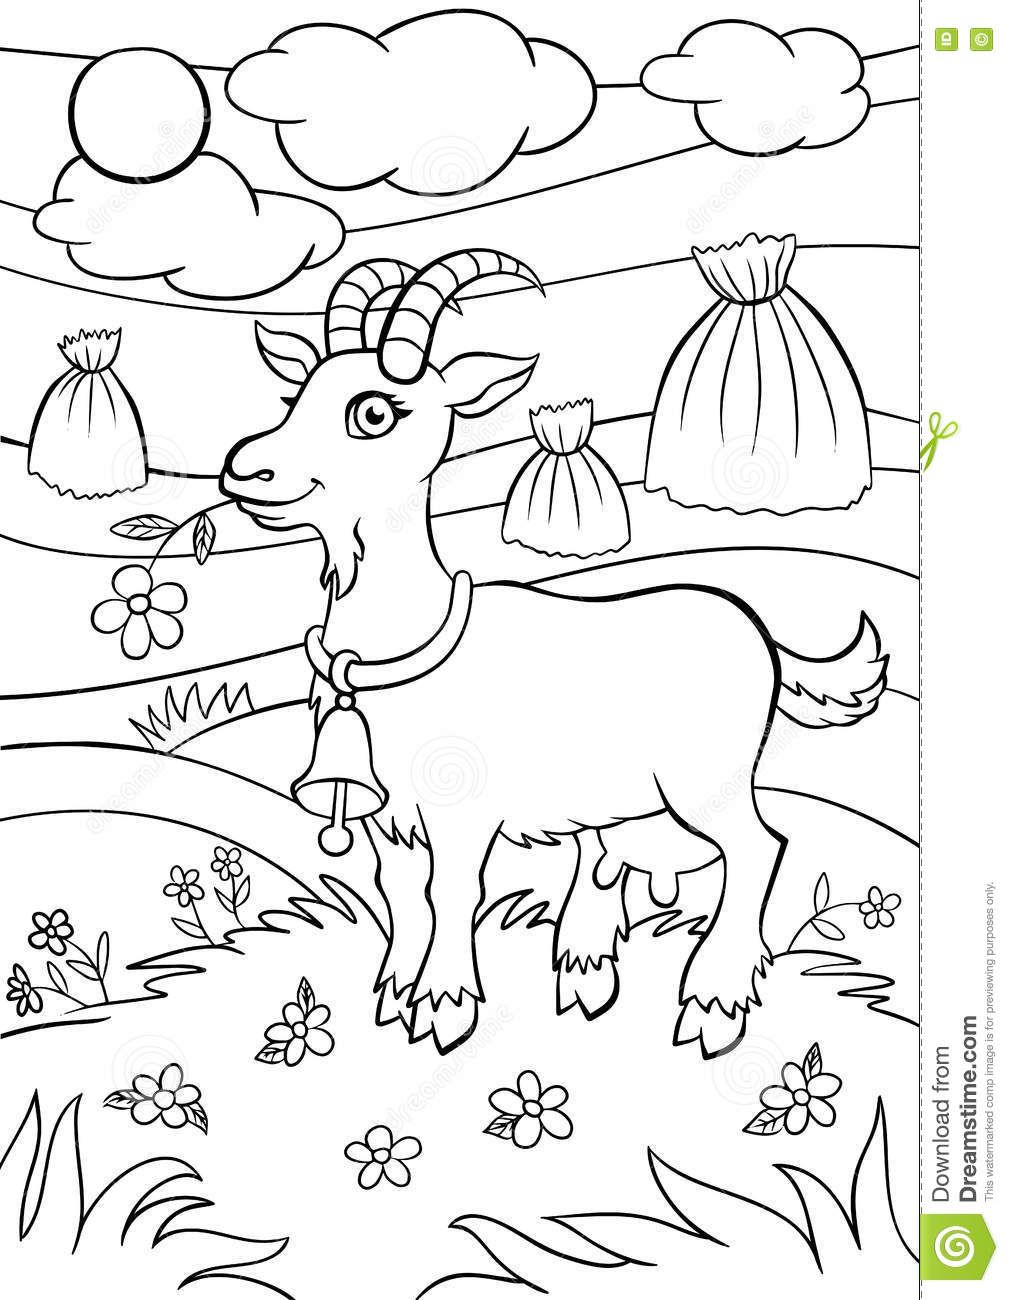 Coloring Pages Animals Little Cute Goat Stock Illustration Image 71205005 Coloring Pages Disney Coloring Pages Cute Goats